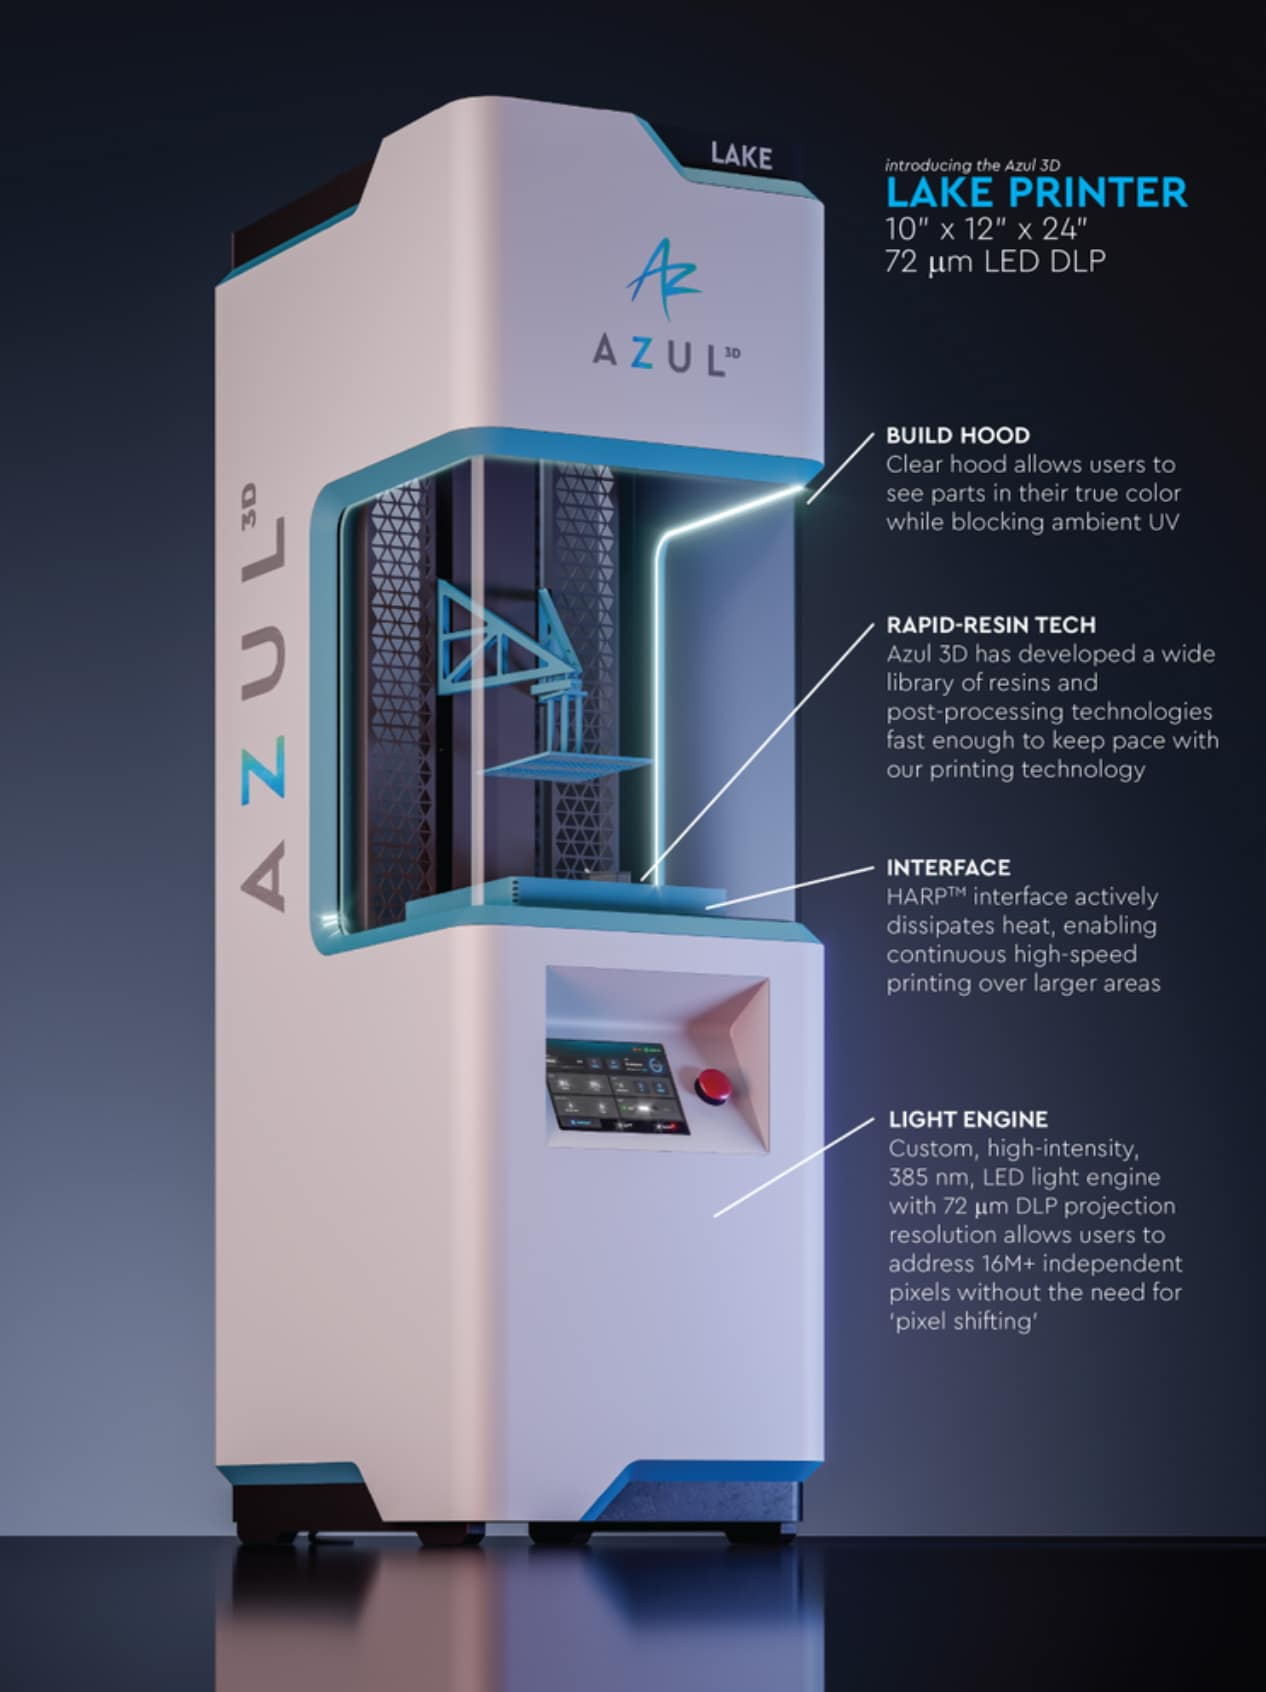 Azul 3D launches new LAKE printer leveraging HARP technology